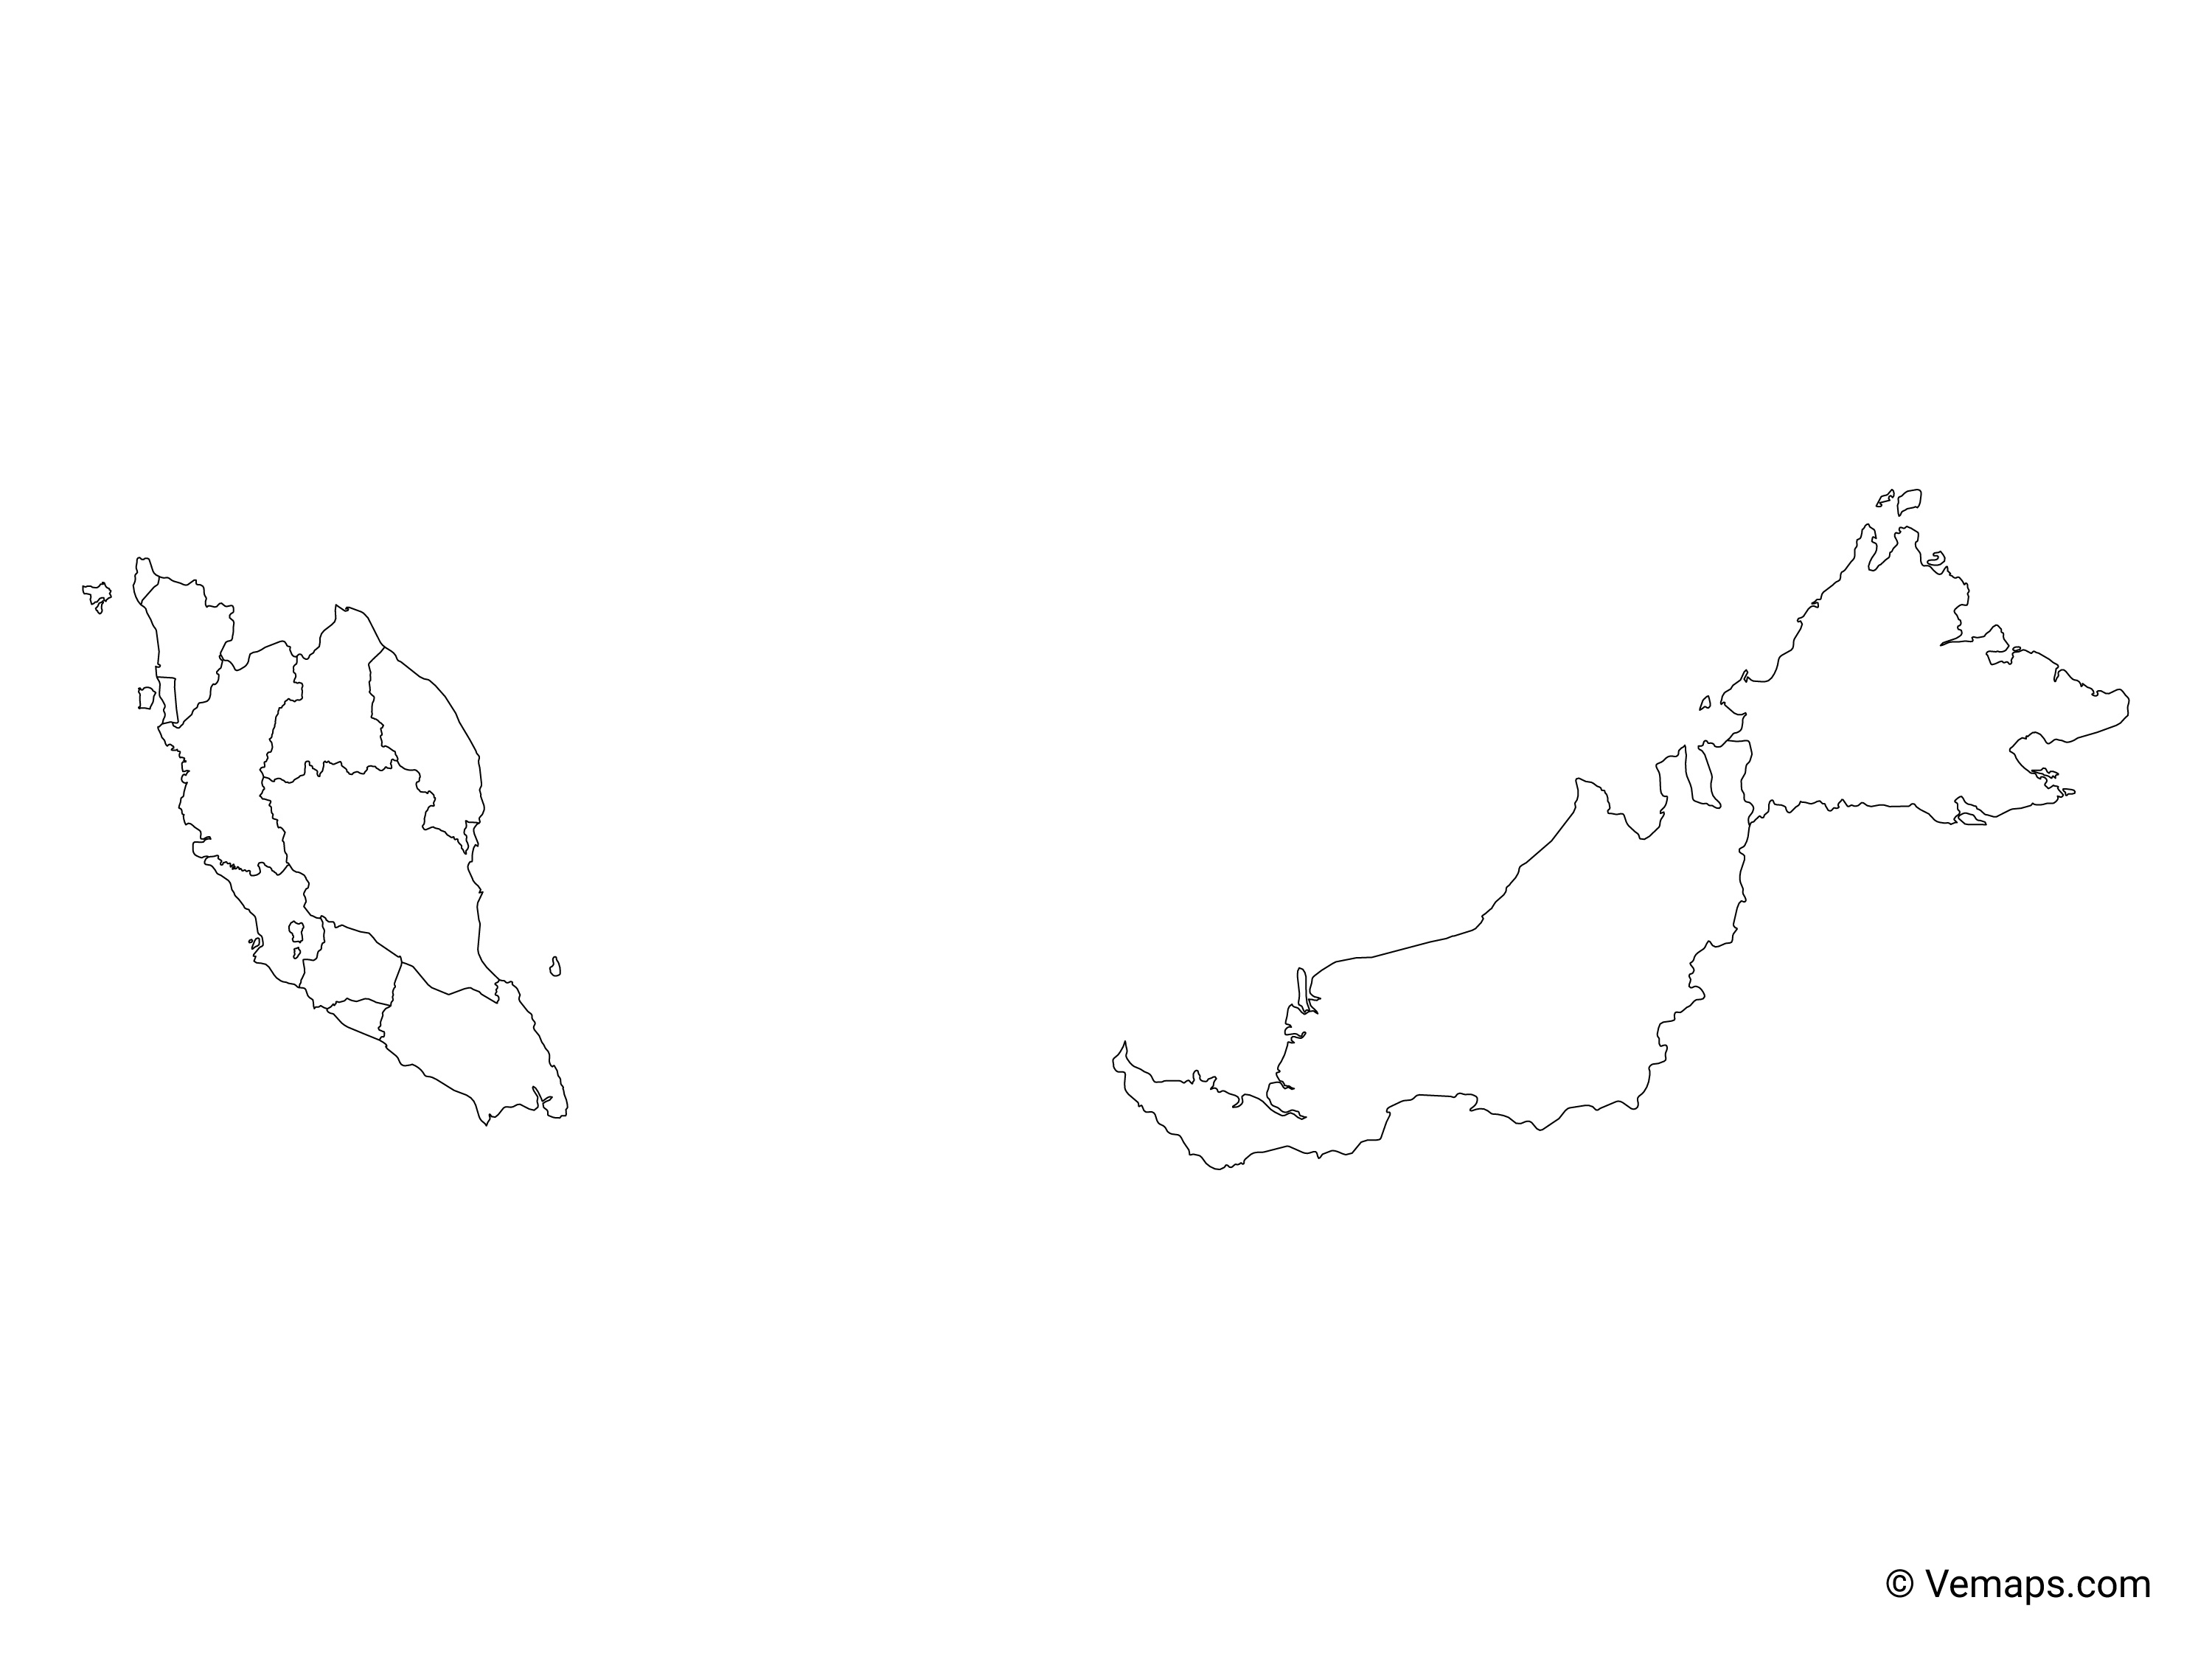 Picture of: Outline Map Of Malaysia With States And Federal Territories Free Vector Maps